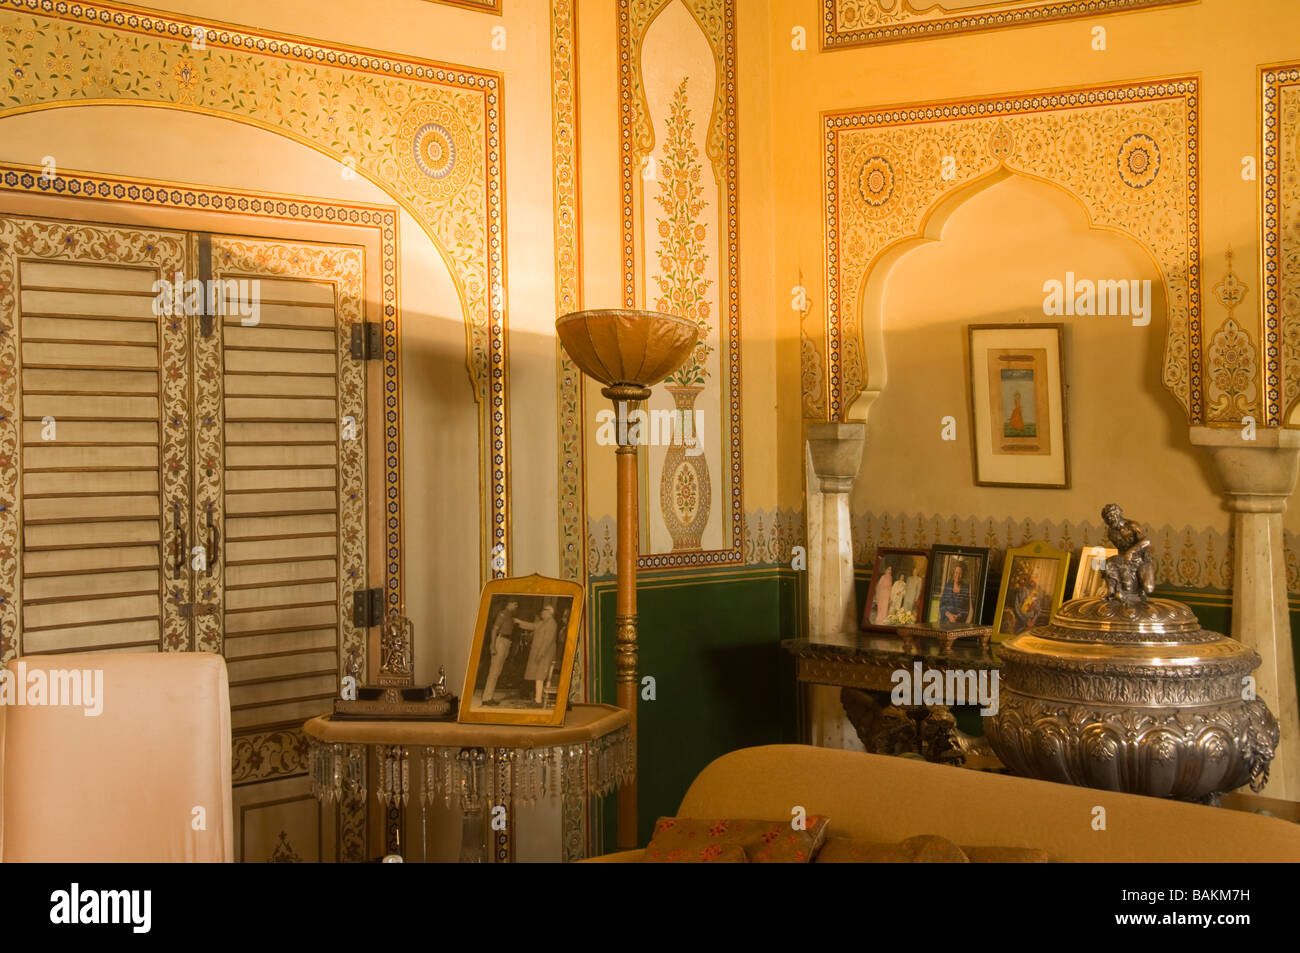 Jaipur City Palace of Jai Singh II Private apartments in the Chandra Mahal Rajasthan India - Stock Image